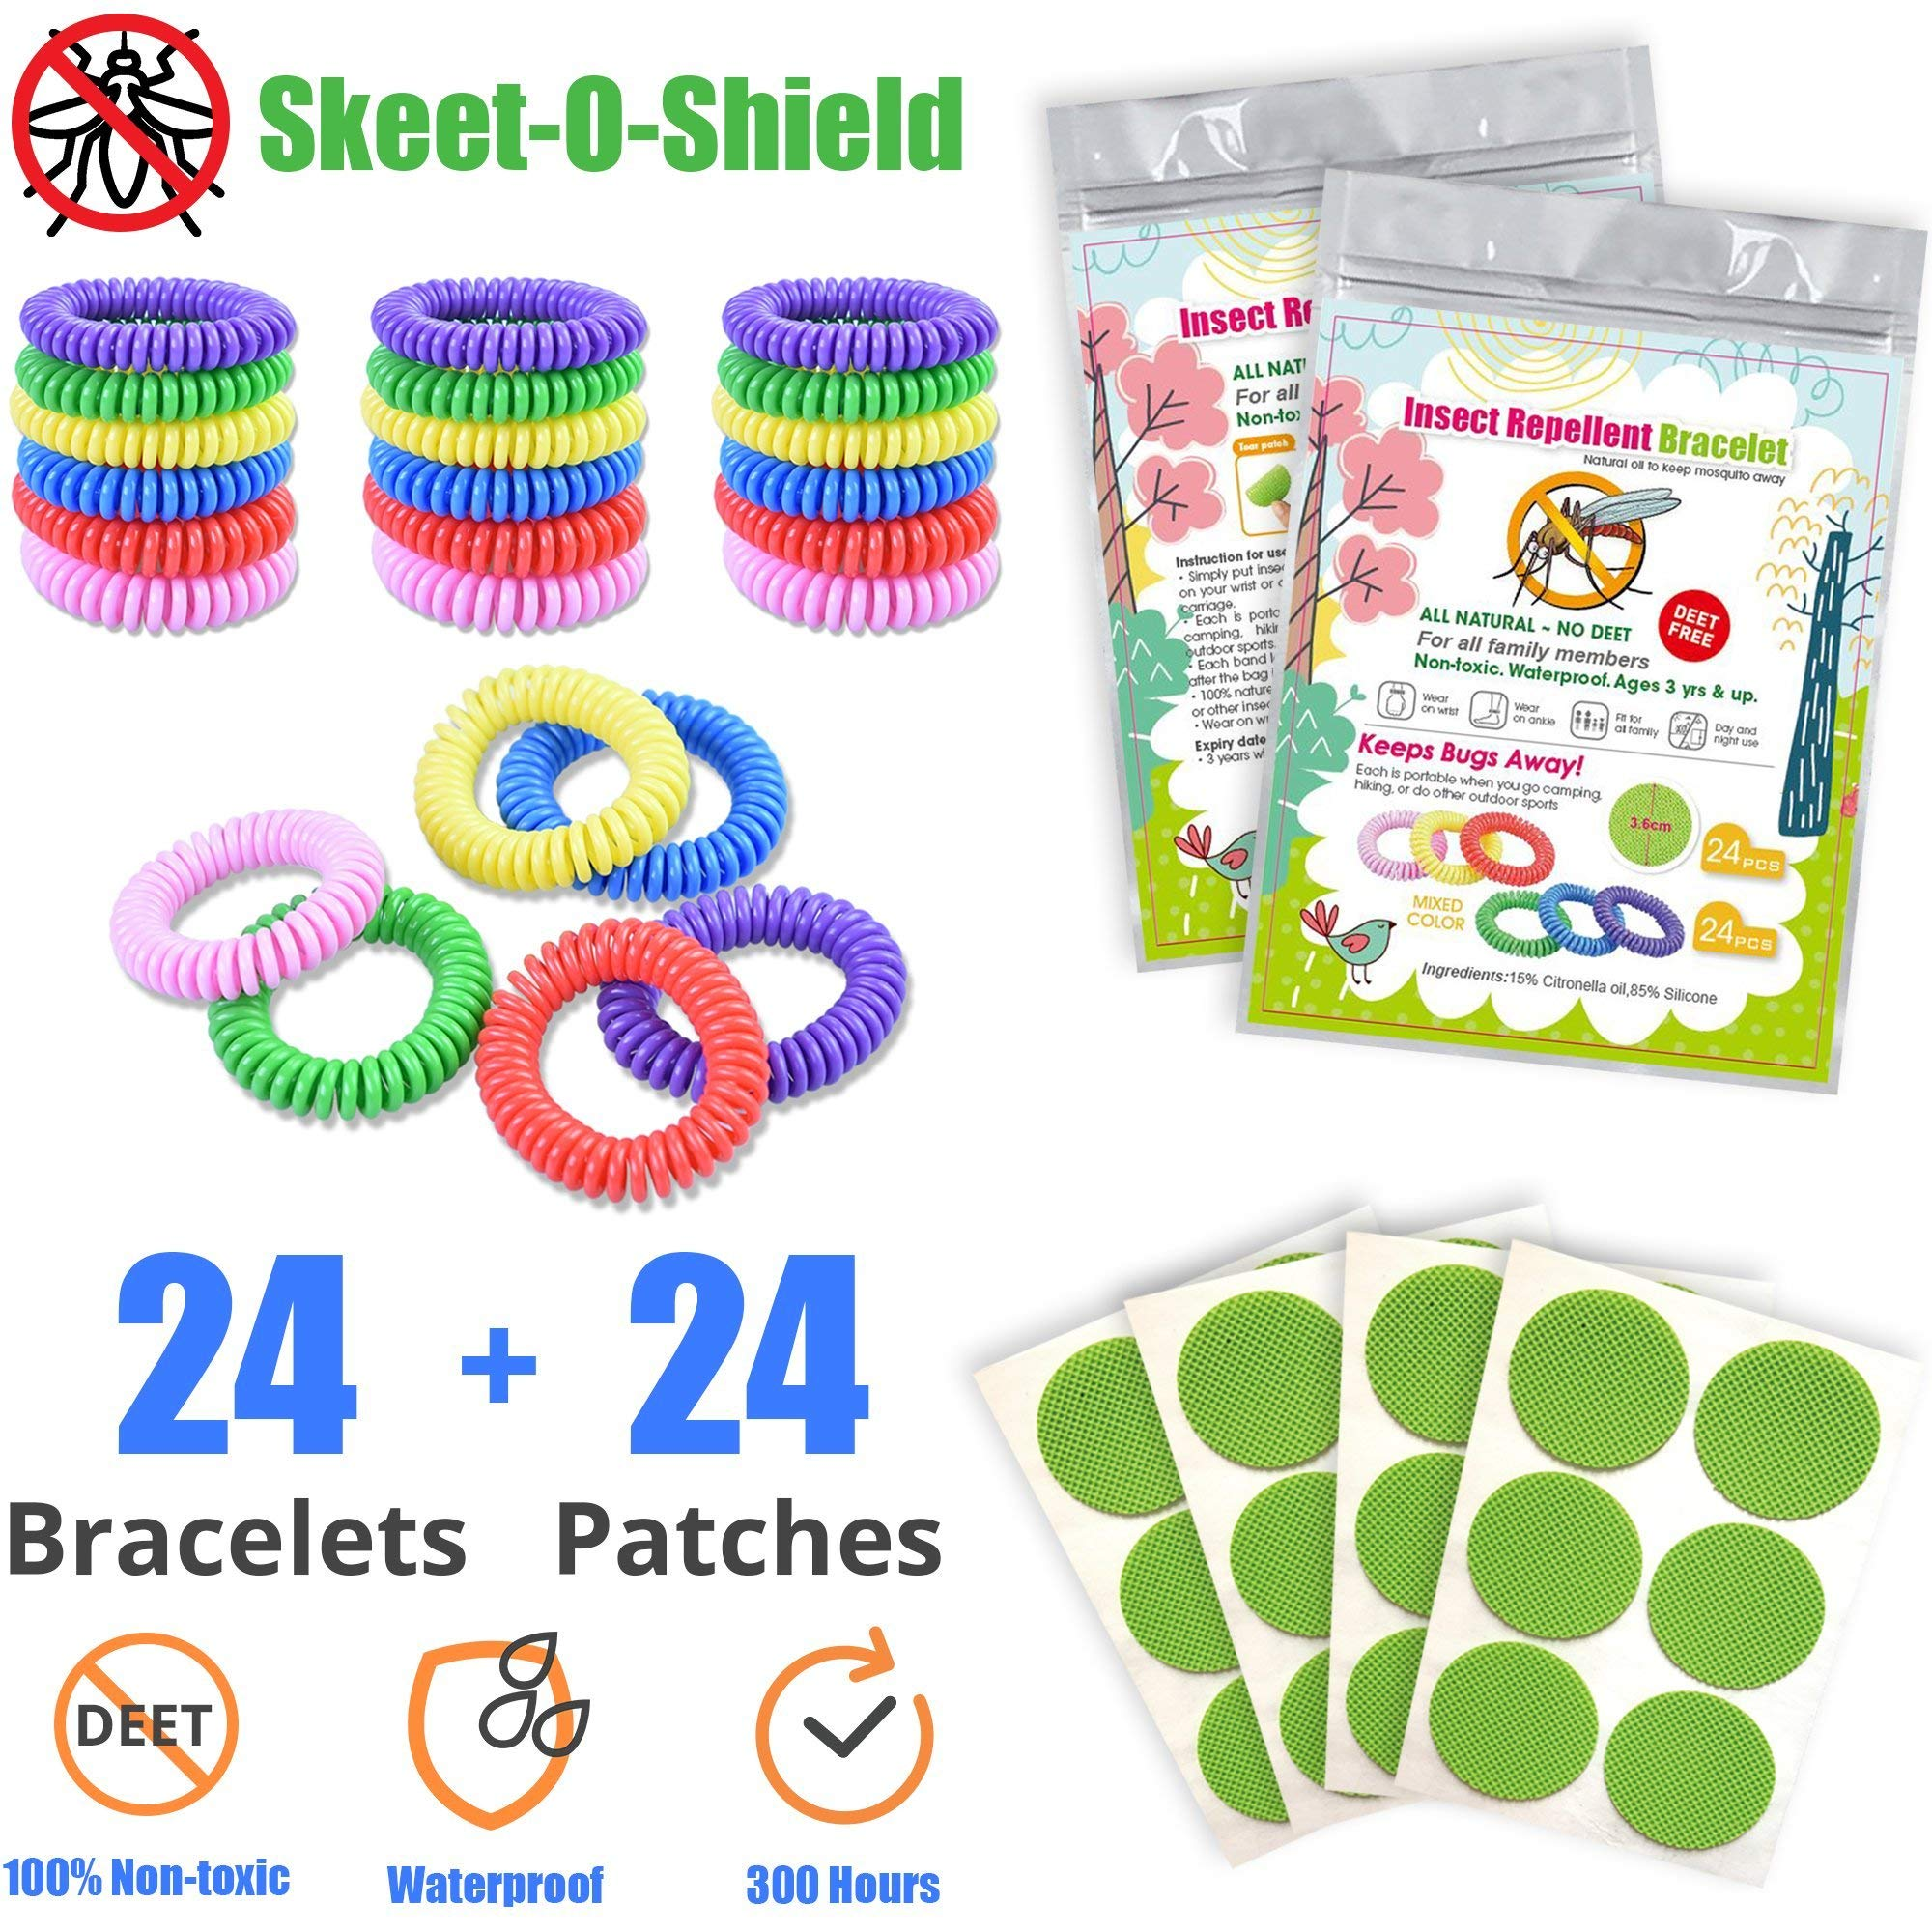 48 Pack - 24 Mosquito Repellent Bracelets + 24 Mosquito Repellent Patches - 100% Non-Toxic & All Natural, Waterproof, DEET Free, Citronella - Safe for Adults, Kids, Toddlers, Babies, and Pets